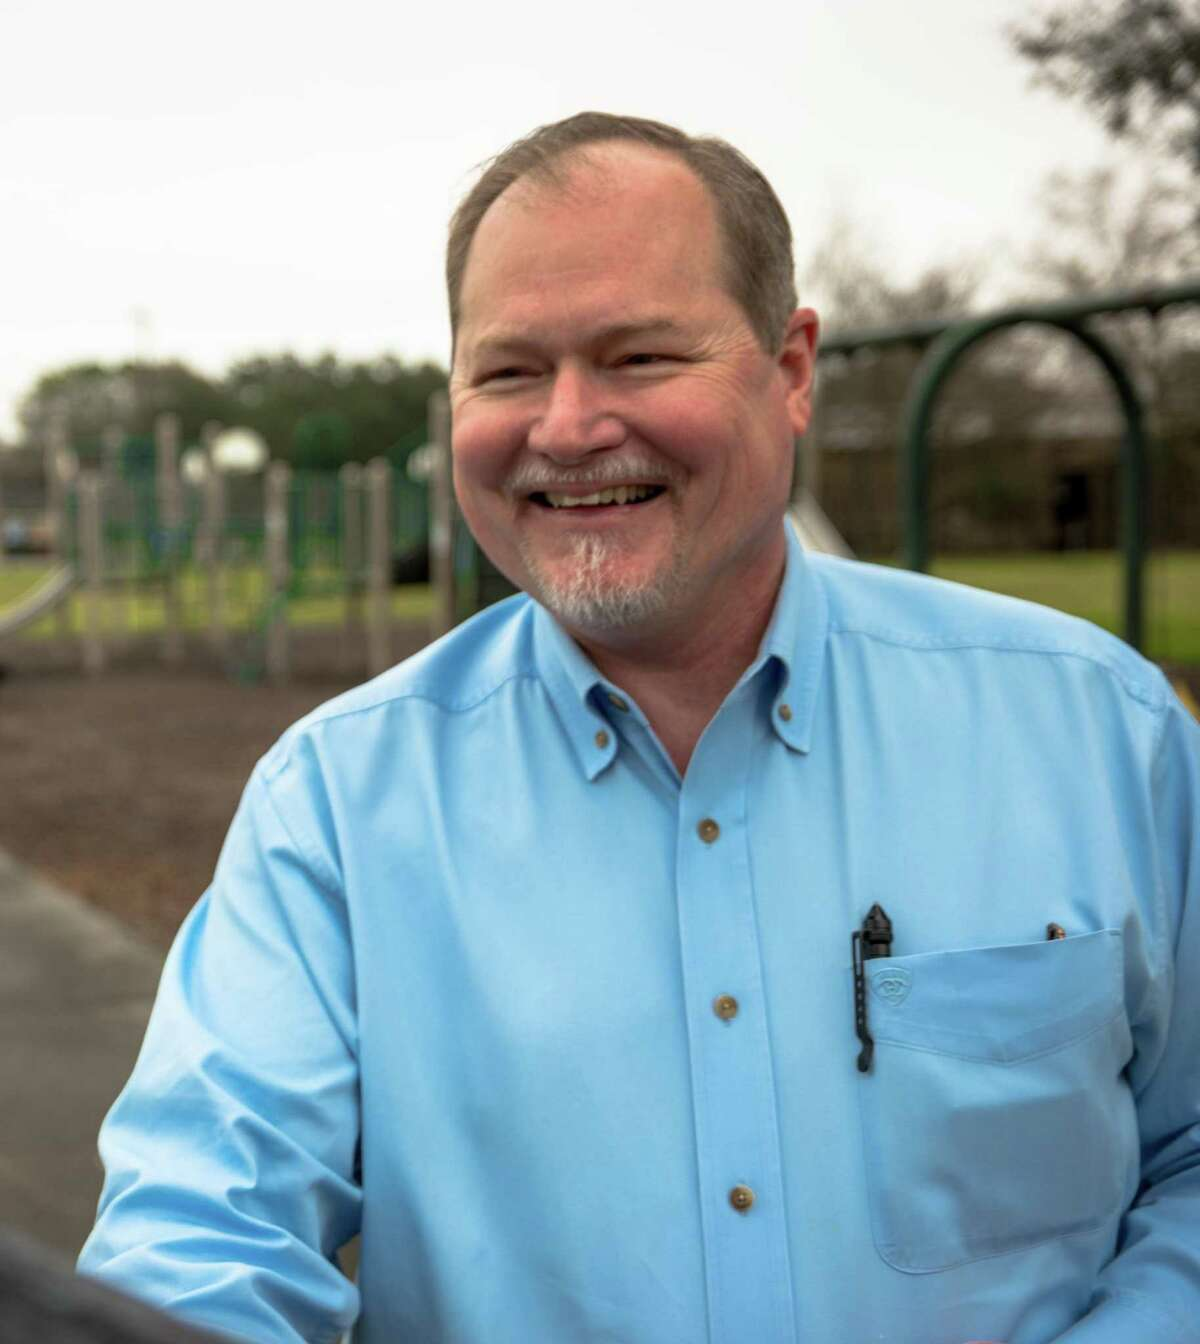 Steve Halvorson, who lost to Bruce Leamon by nine votes in 2017 in a race for Pasadena's District B, is running against Leamon and Blanca Sanchez for the seat in the May 4 election.